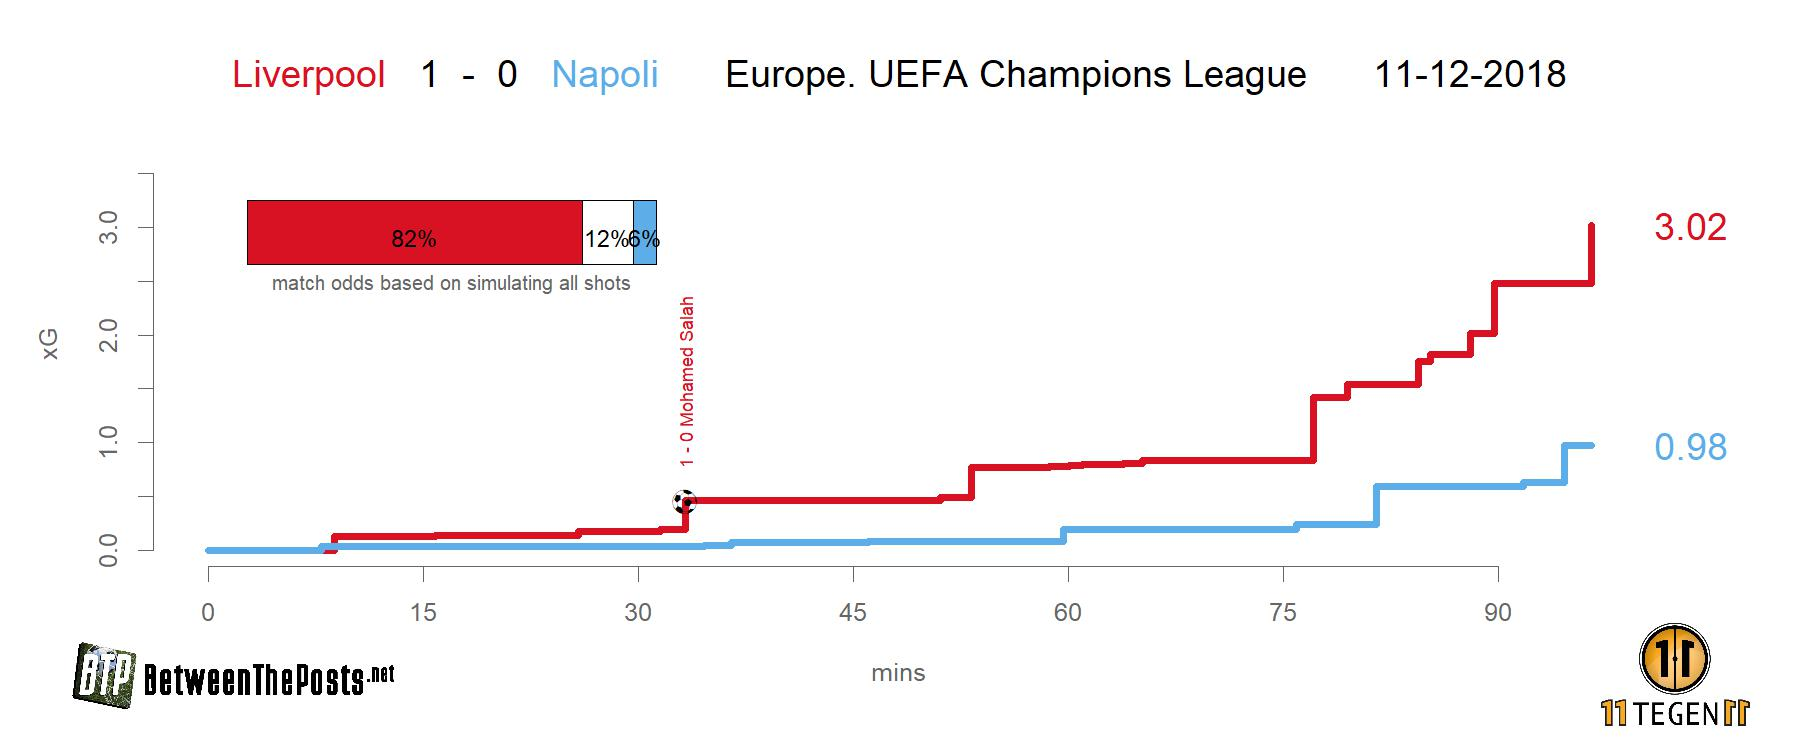 Expected goals plot Liverpool - Napoli 1-0 Champions League